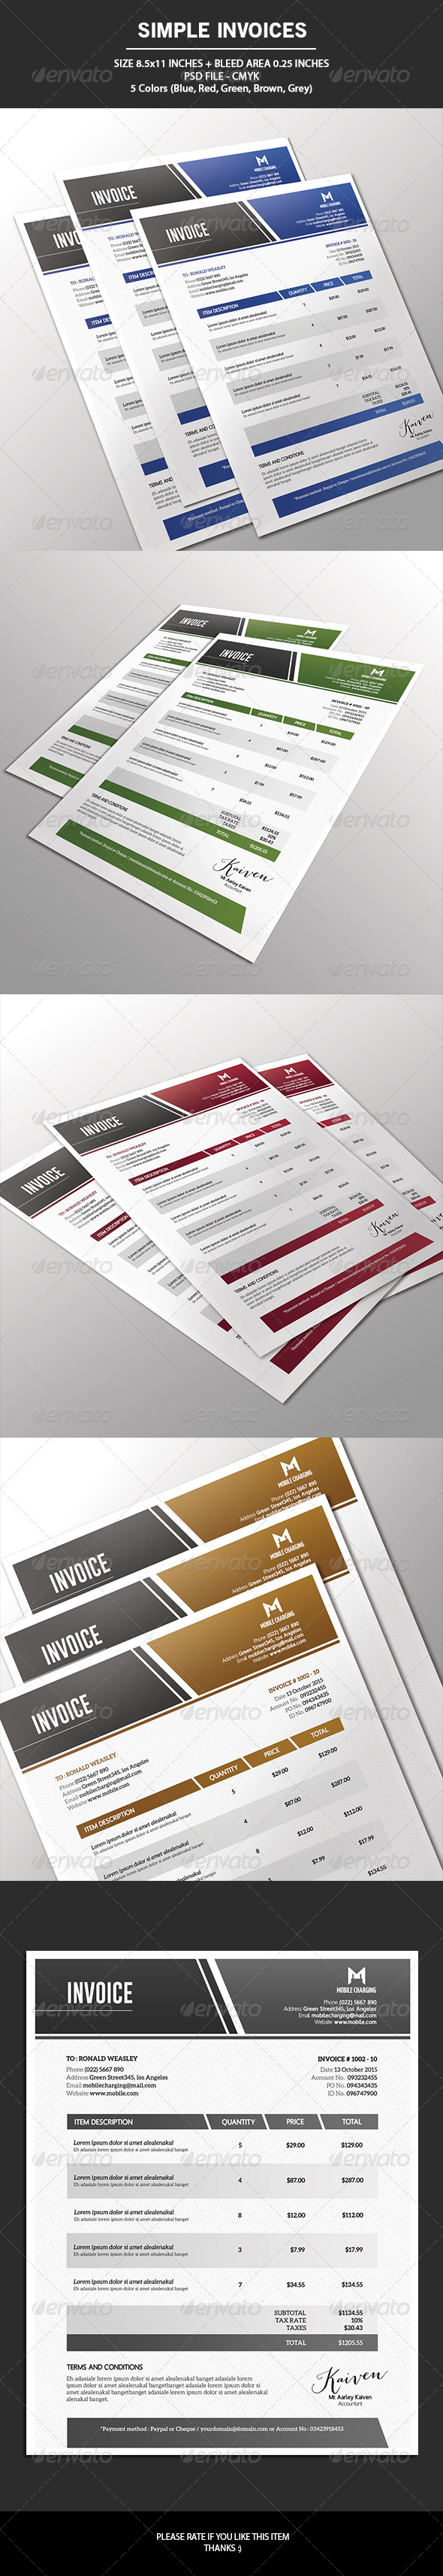 GraphicRiver Simple Invoices 7227724